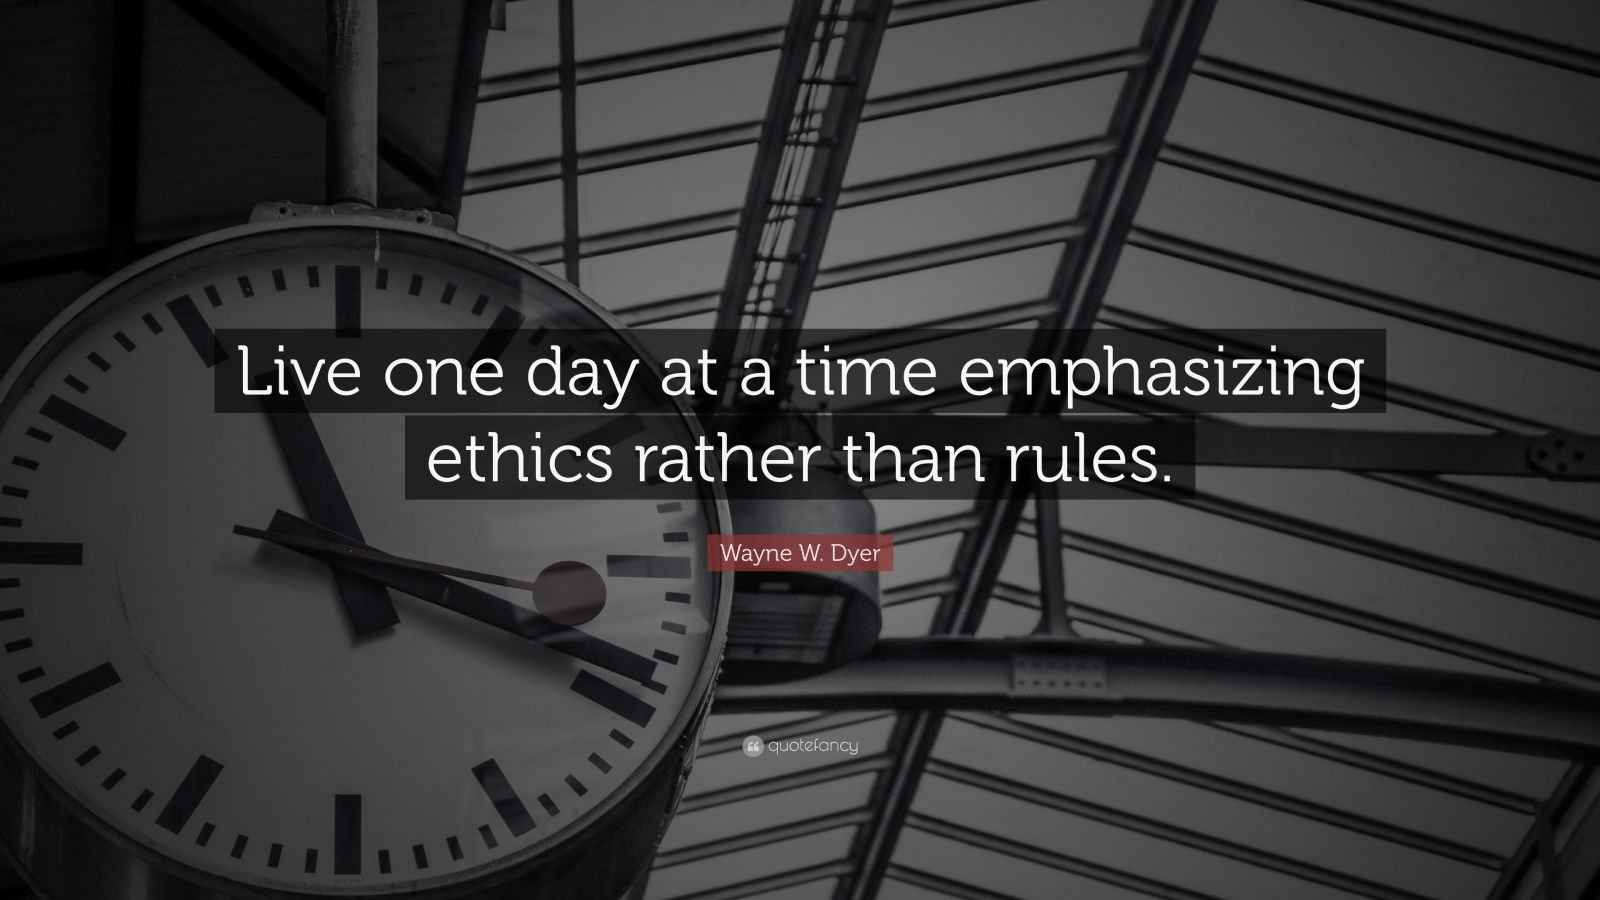 """Wayne W. Dyer Quote: """"Live one day at a time emphasizing ethics rather than rules."""""""